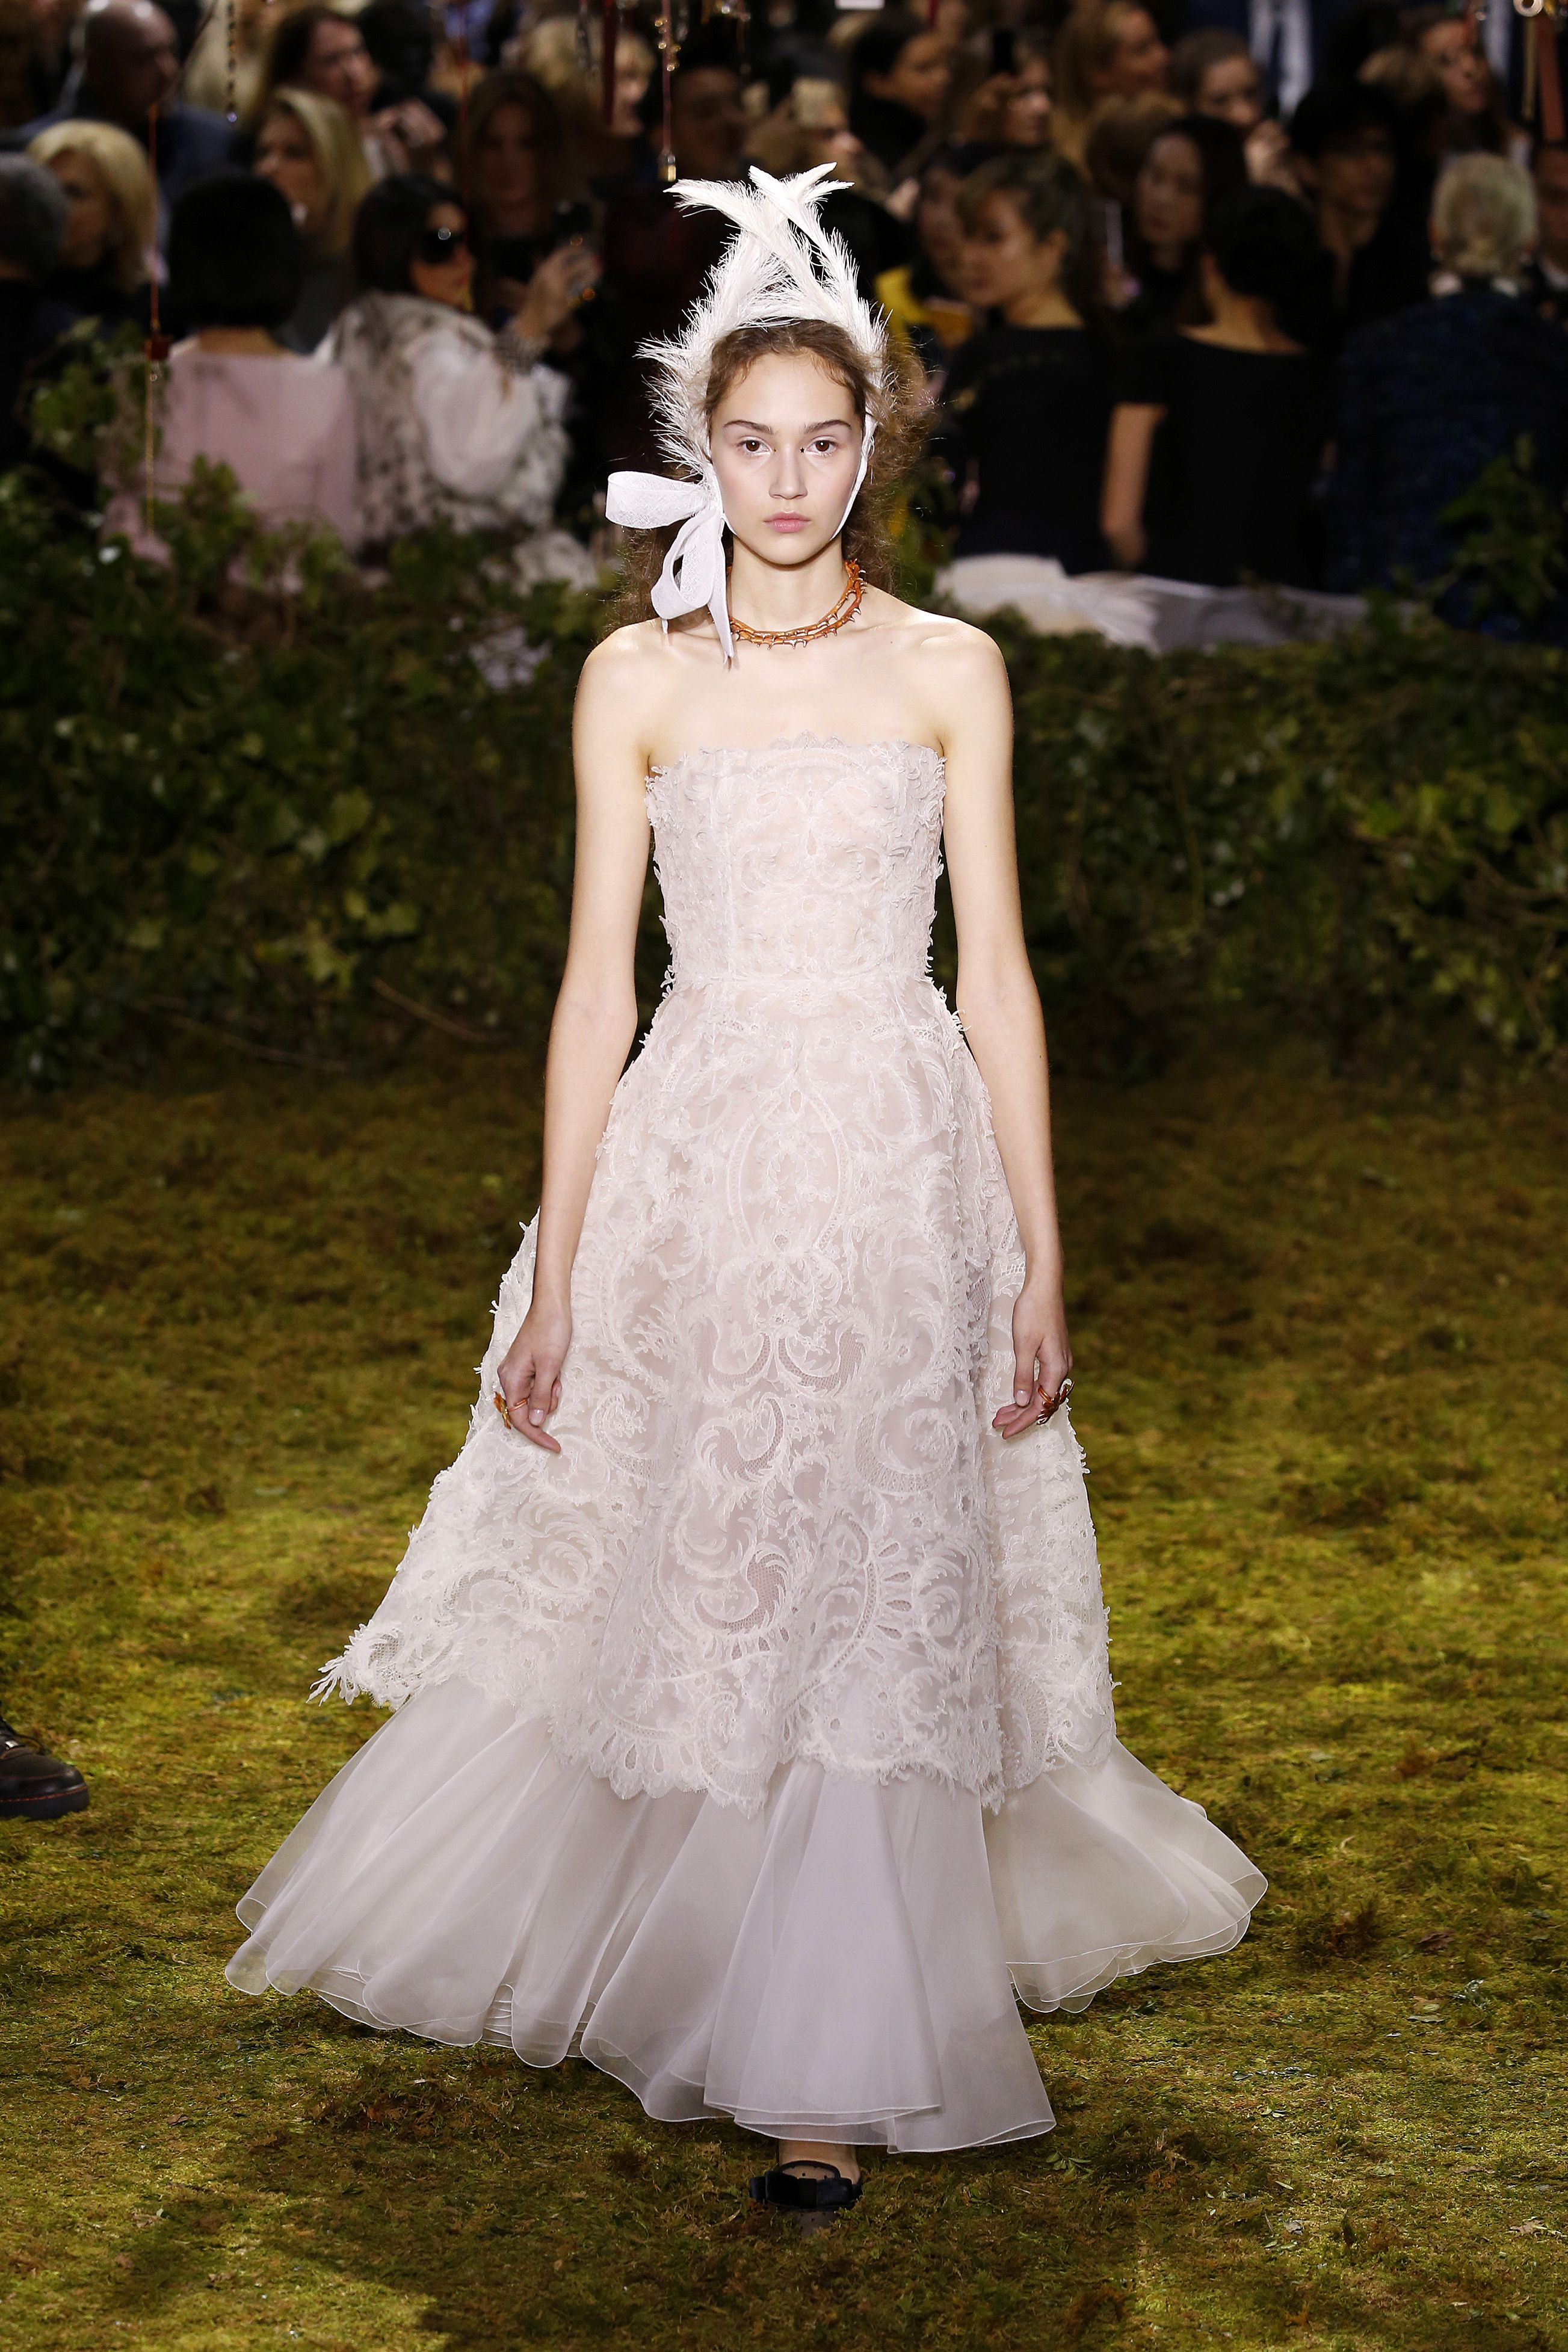 Spring Couture 2017 Wedding Gowns - 30 Perfect Wedding Gowns From ...